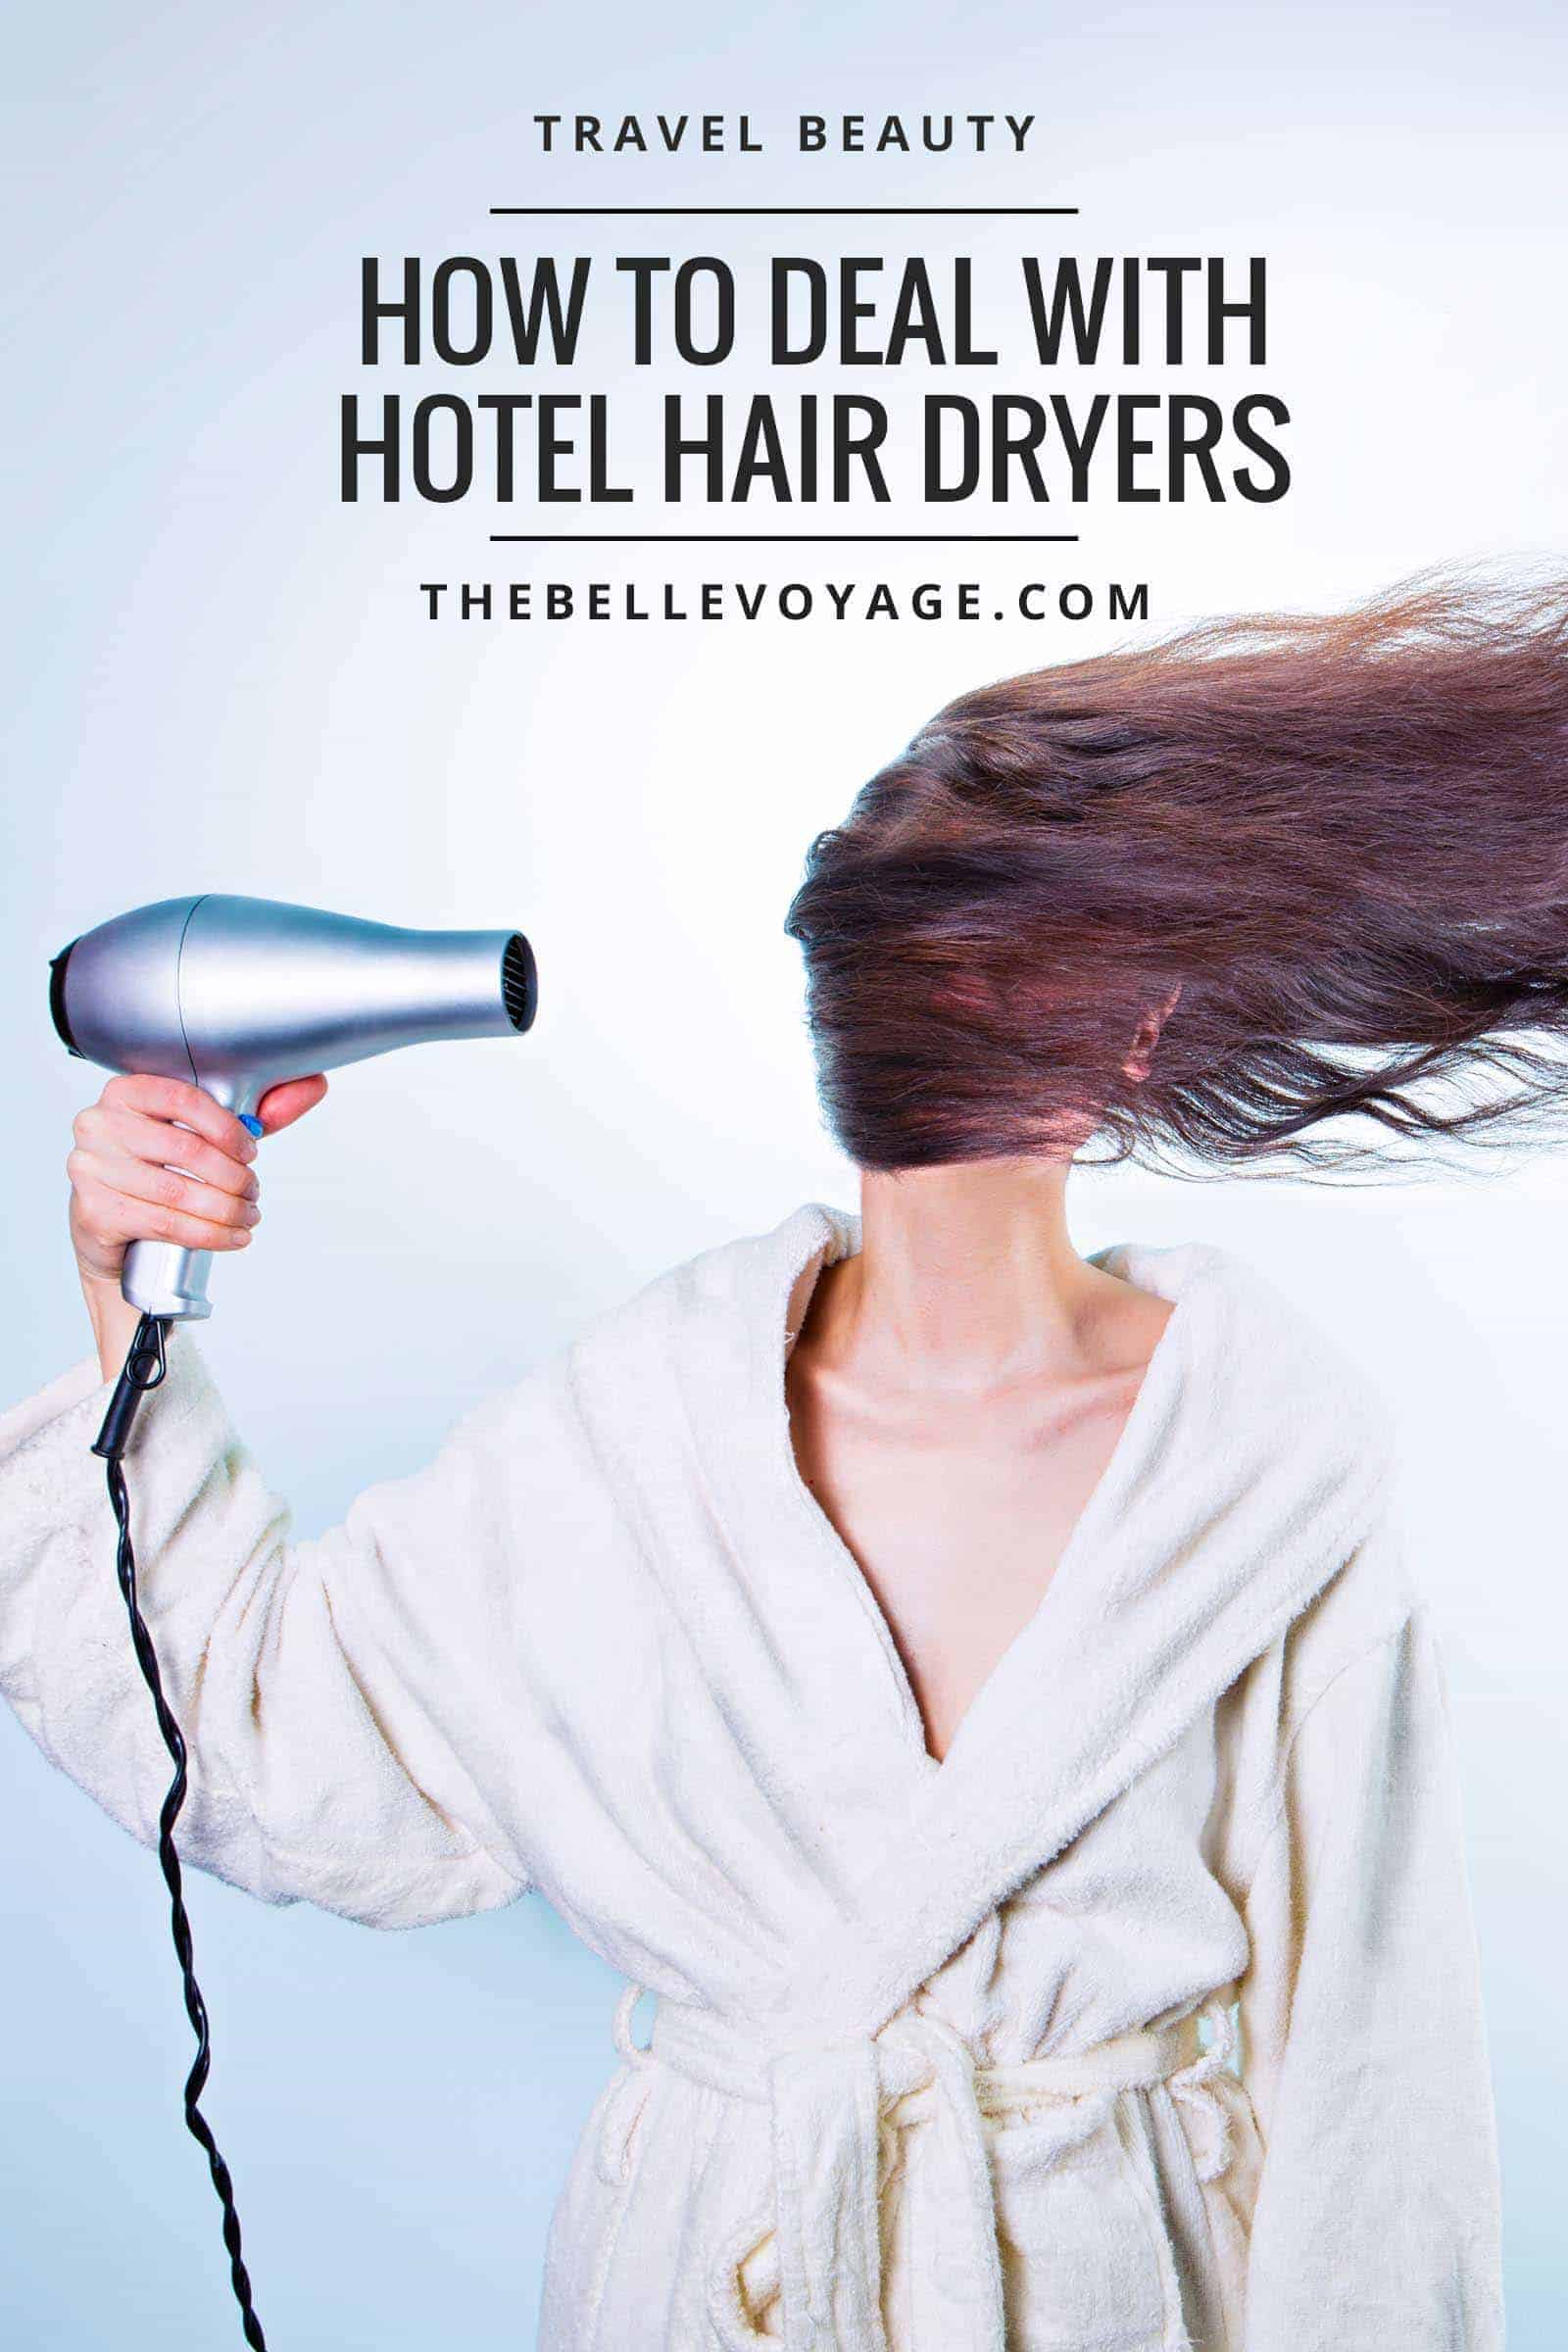 hotel hair dryers travel beauty